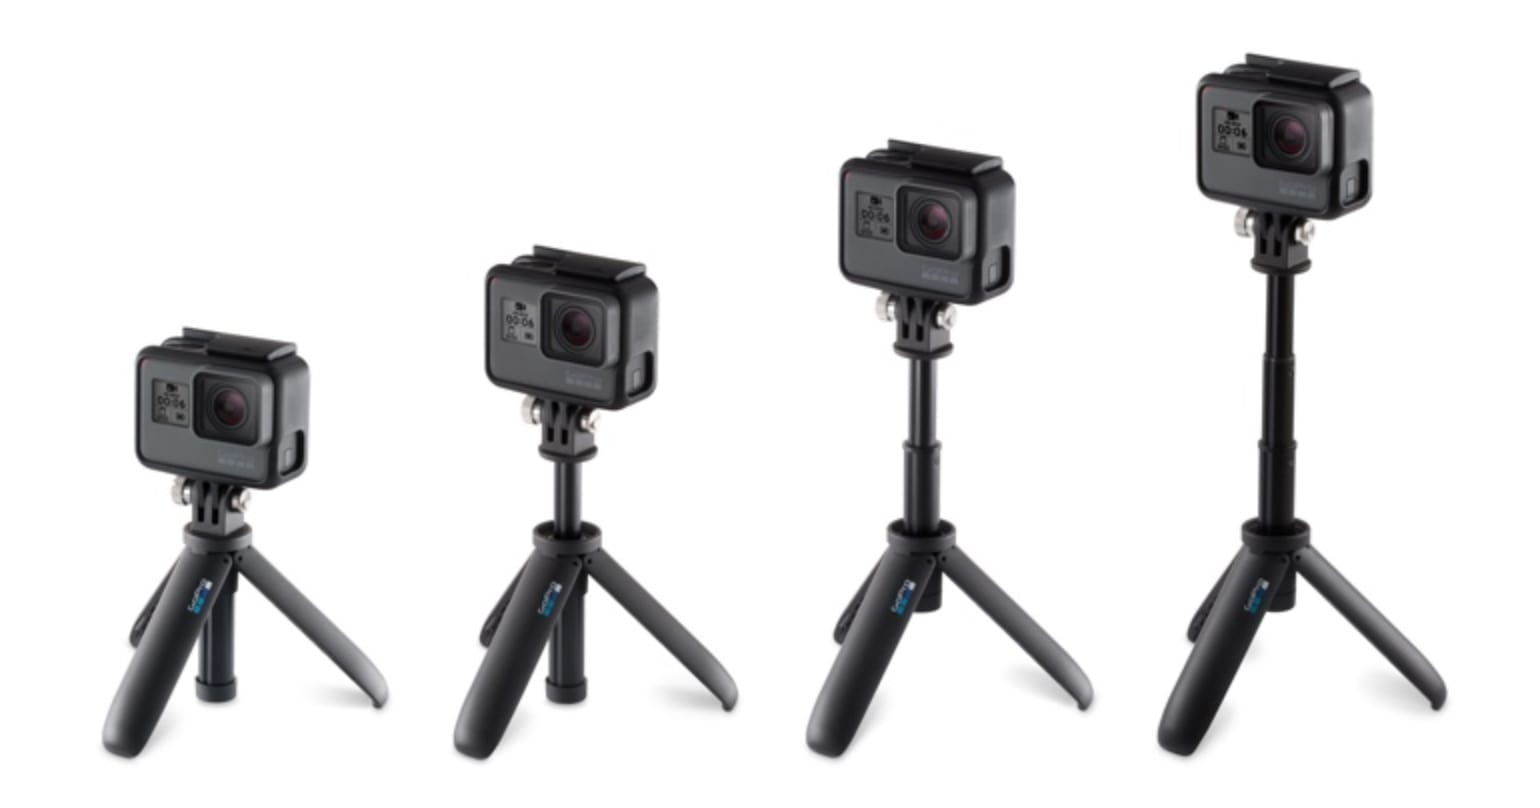 Top 5 Best Gopro Tripods Of 2019 Reviews Tripodyssey